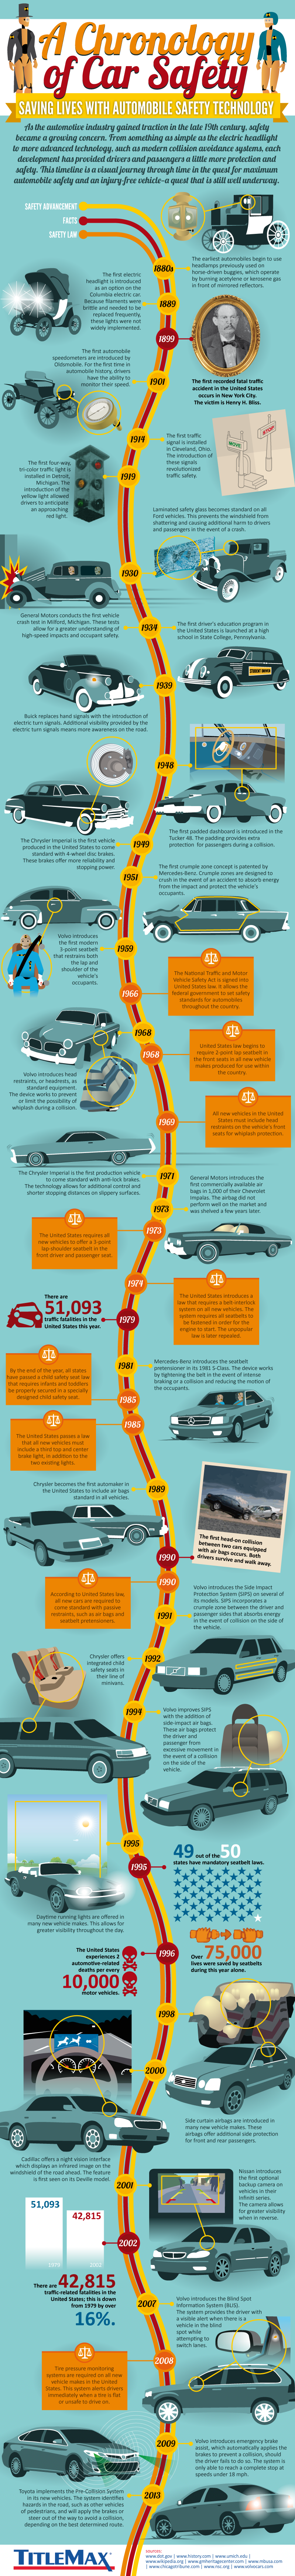 A Chronology of Car Safety #infographic